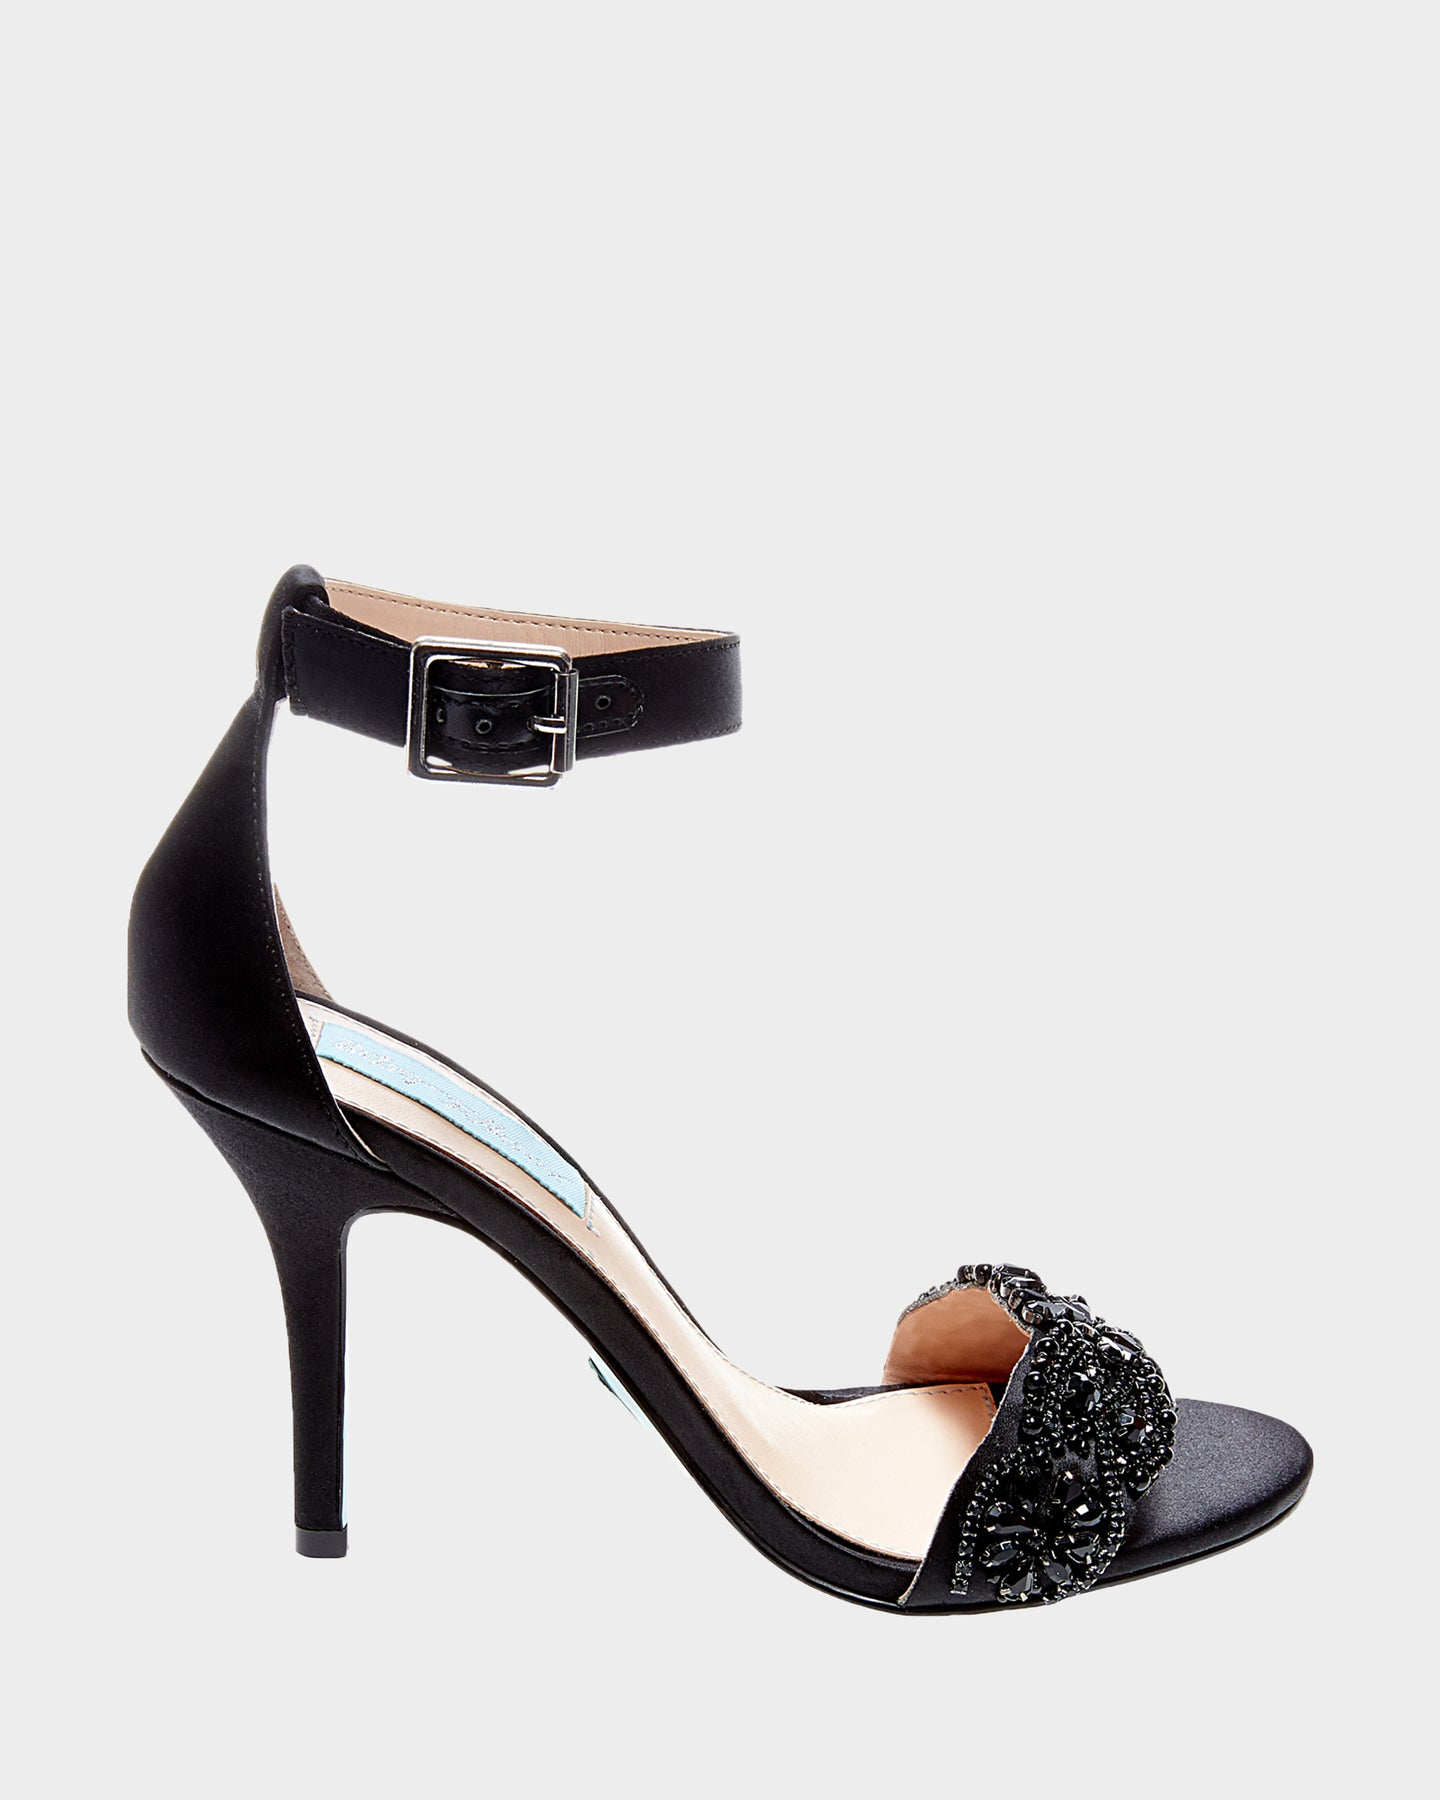 SB-GINA BLACK SATIN - SHOES - Betsey Johnson